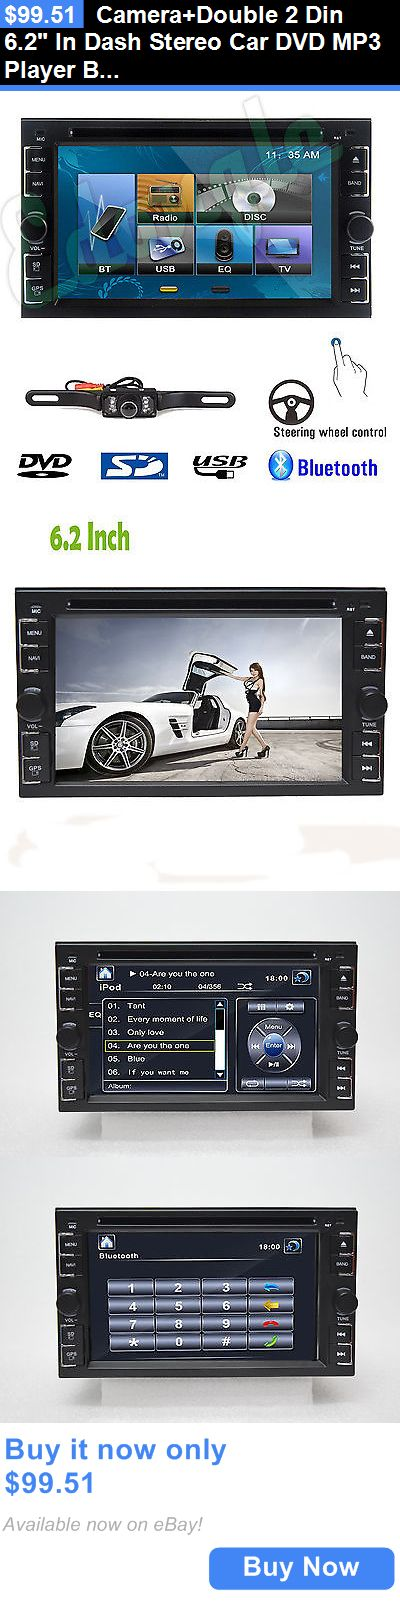 Vehicle Electronics And GPS: Camera+Double 2 Din 6.2 In Dash Stereo Car Dvd Mp3 Player Bluetooth Radio Ipod BUY IT NOW ONLY: $99.51